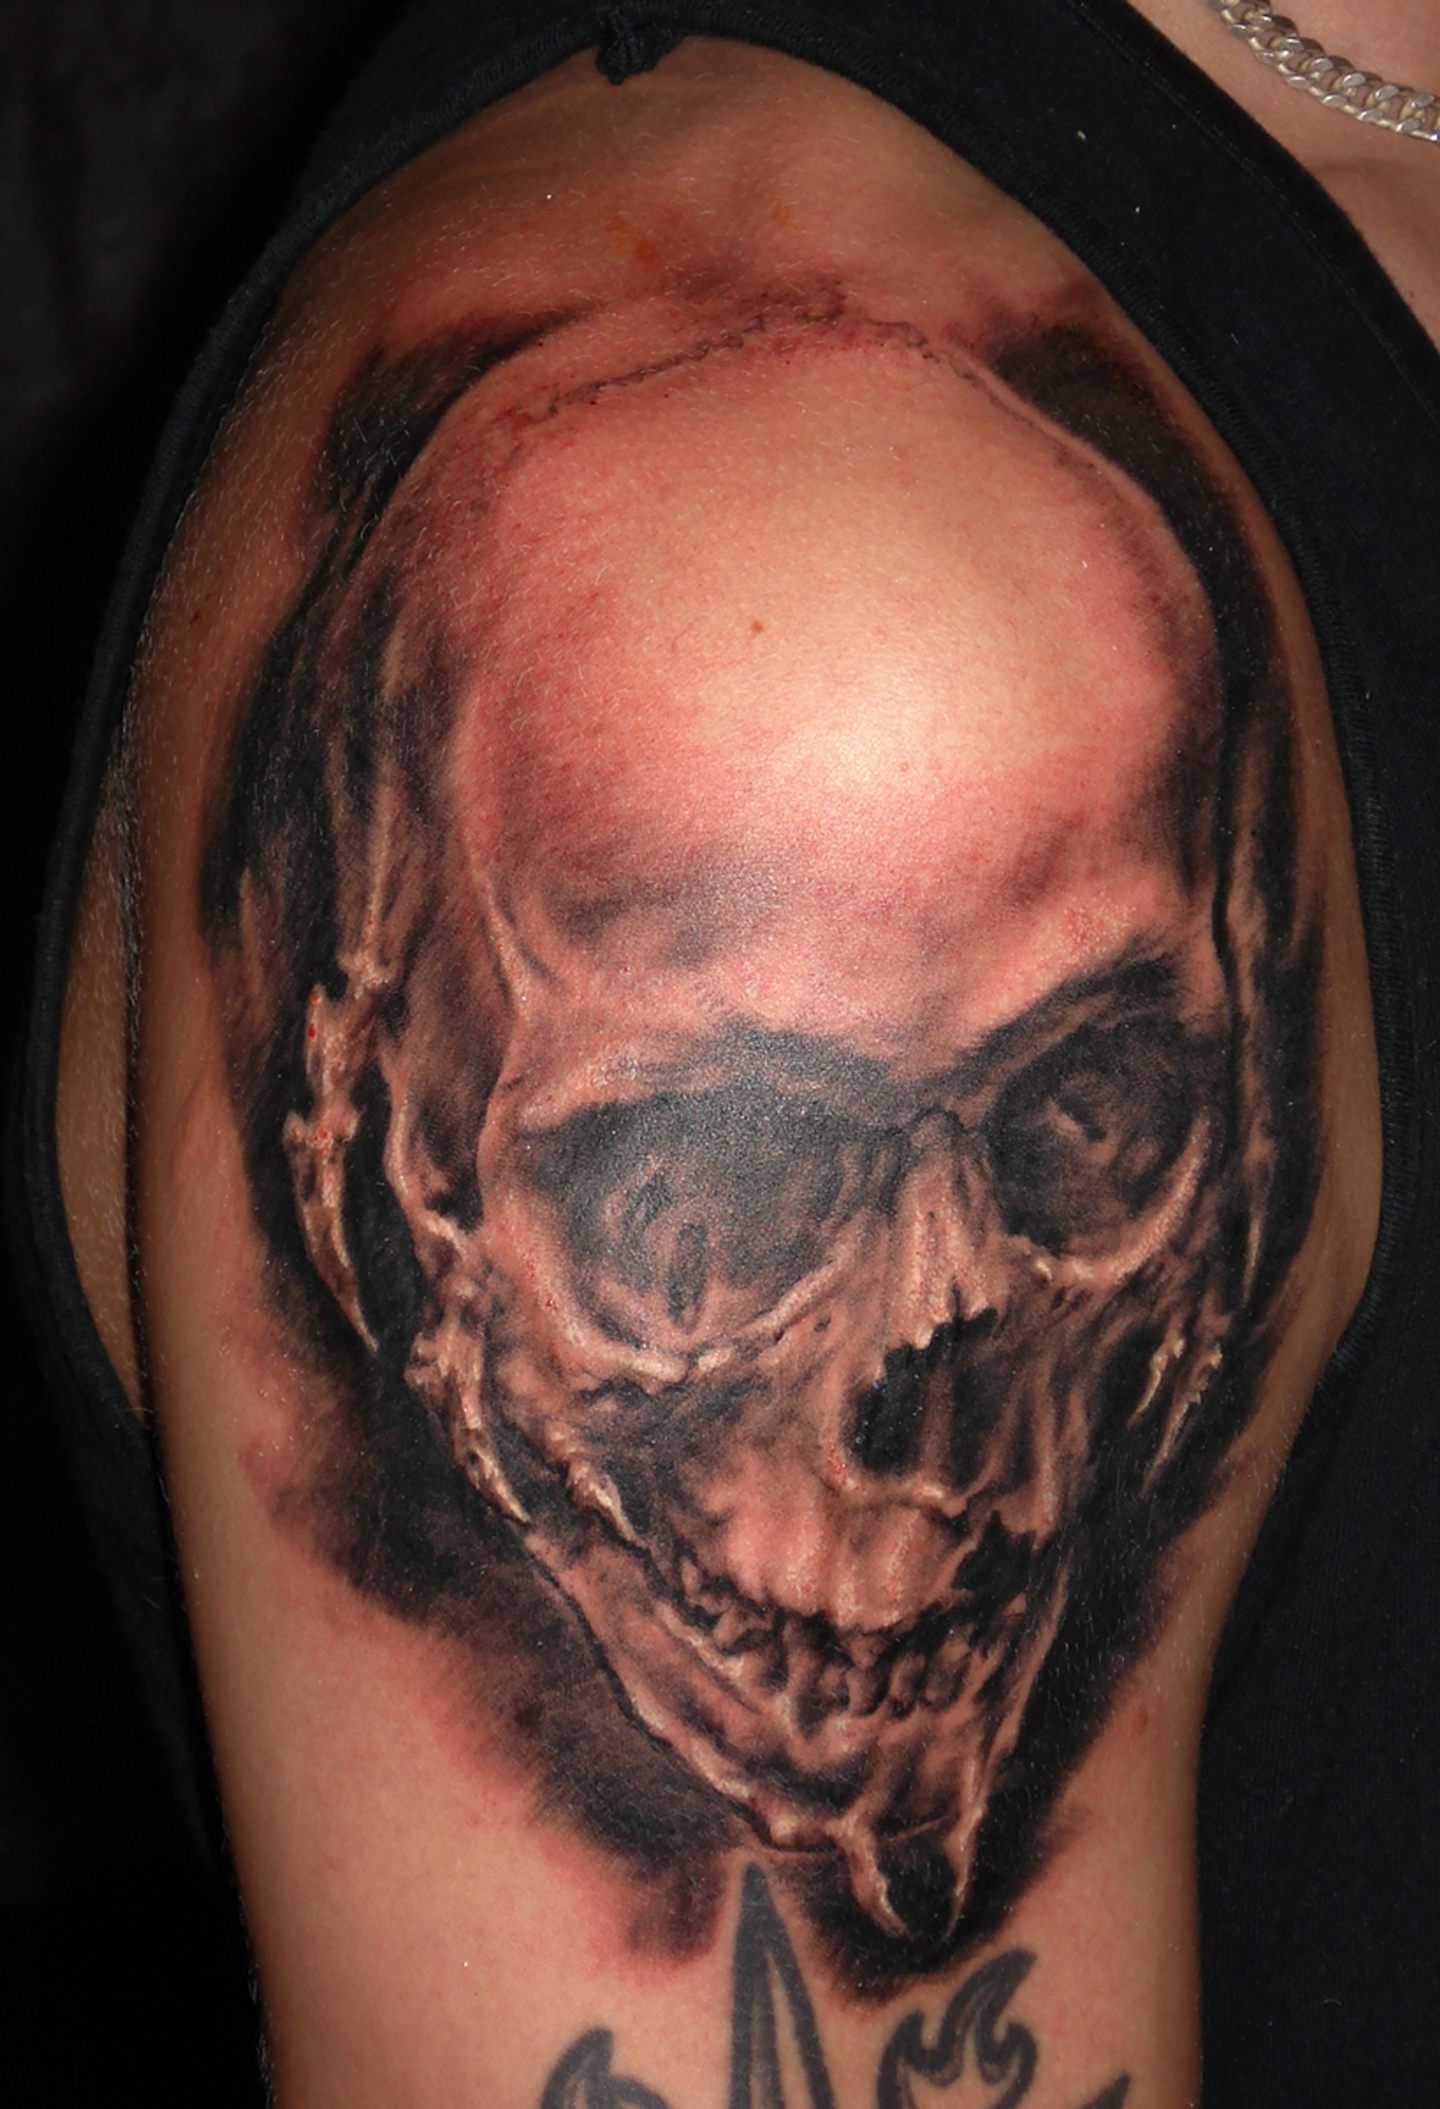 Black and Grey Spiky Skull Upper Arm Tattoo, (fresh)